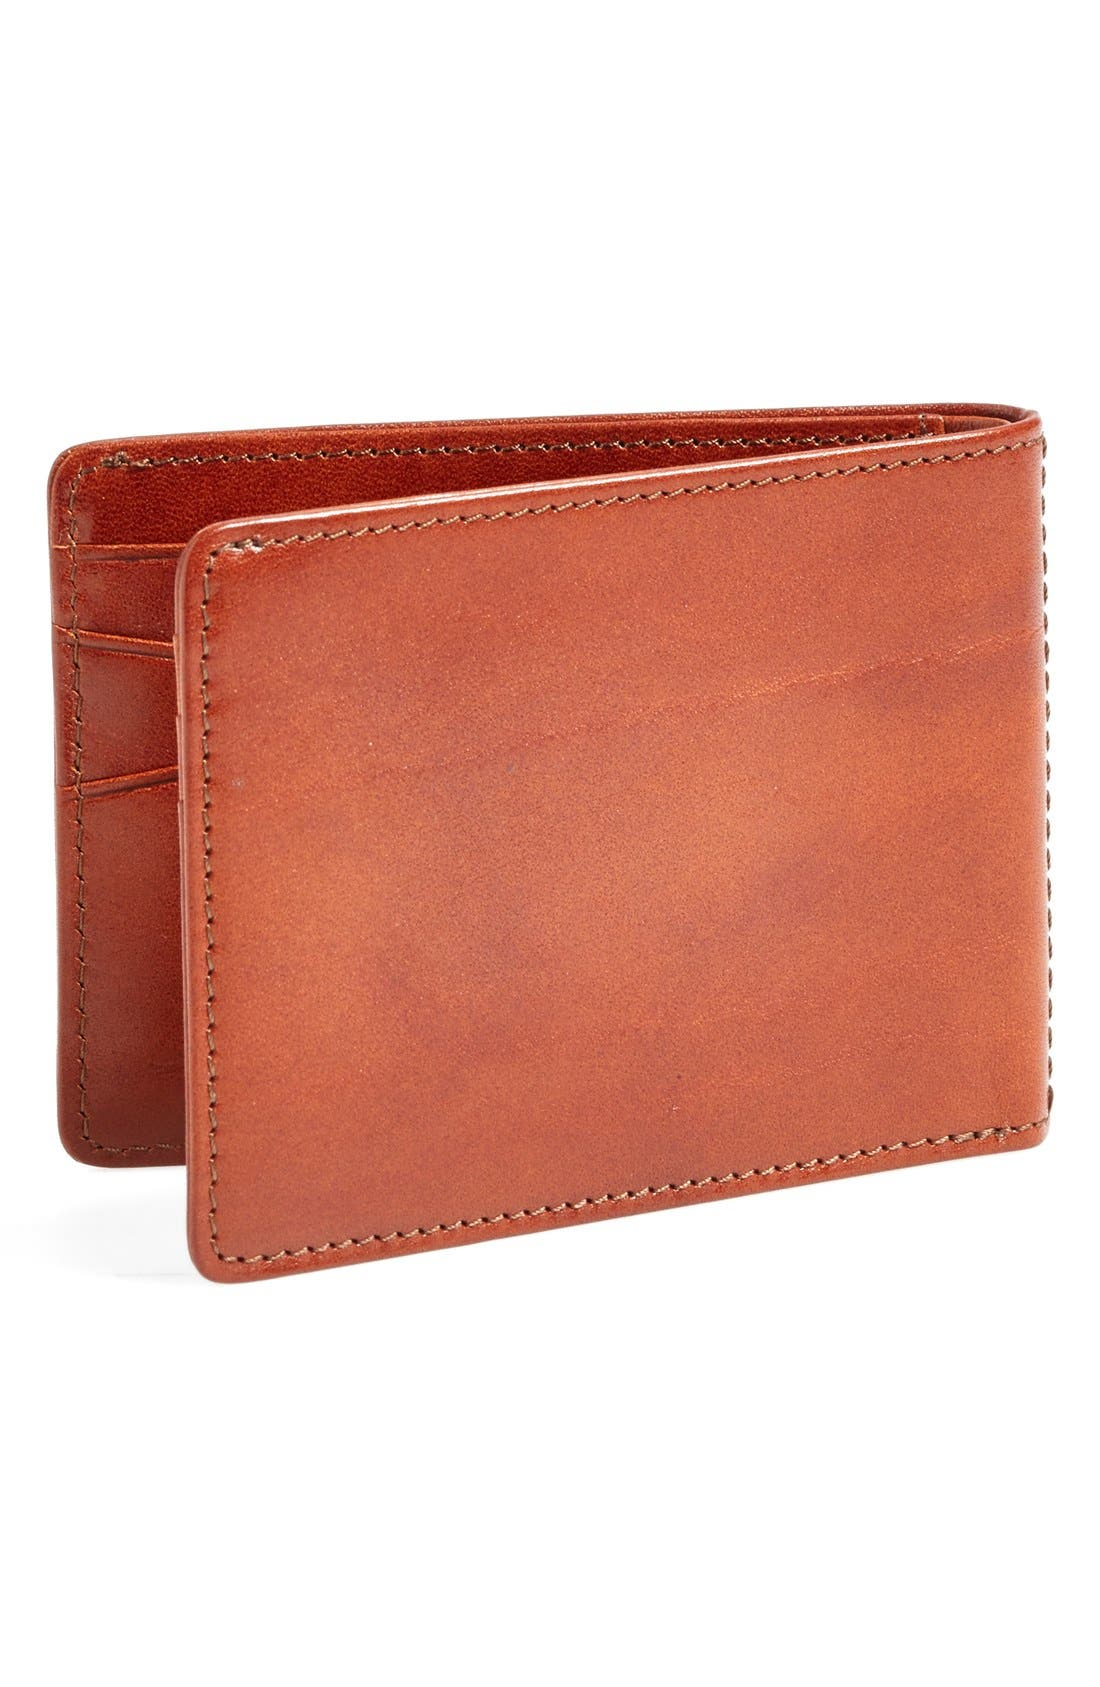 Small Bifold Wallet,                             Alternate thumbnail 3, color,                             AMBER